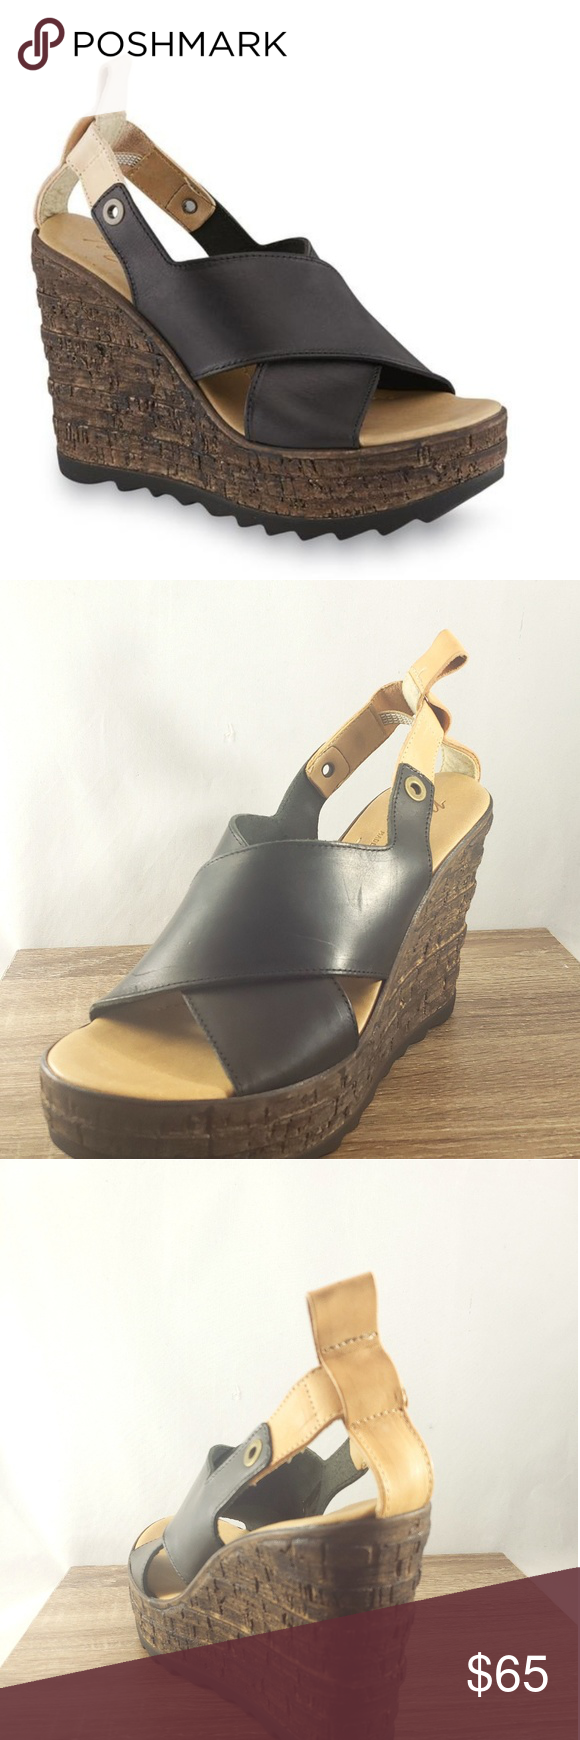 Matisse Ridge Black Platform Sandals Matisse Keeps Your Feet In Rugged Style That S Totally Sweet With T Black Platform Sandals Platform Sandals Black Platform